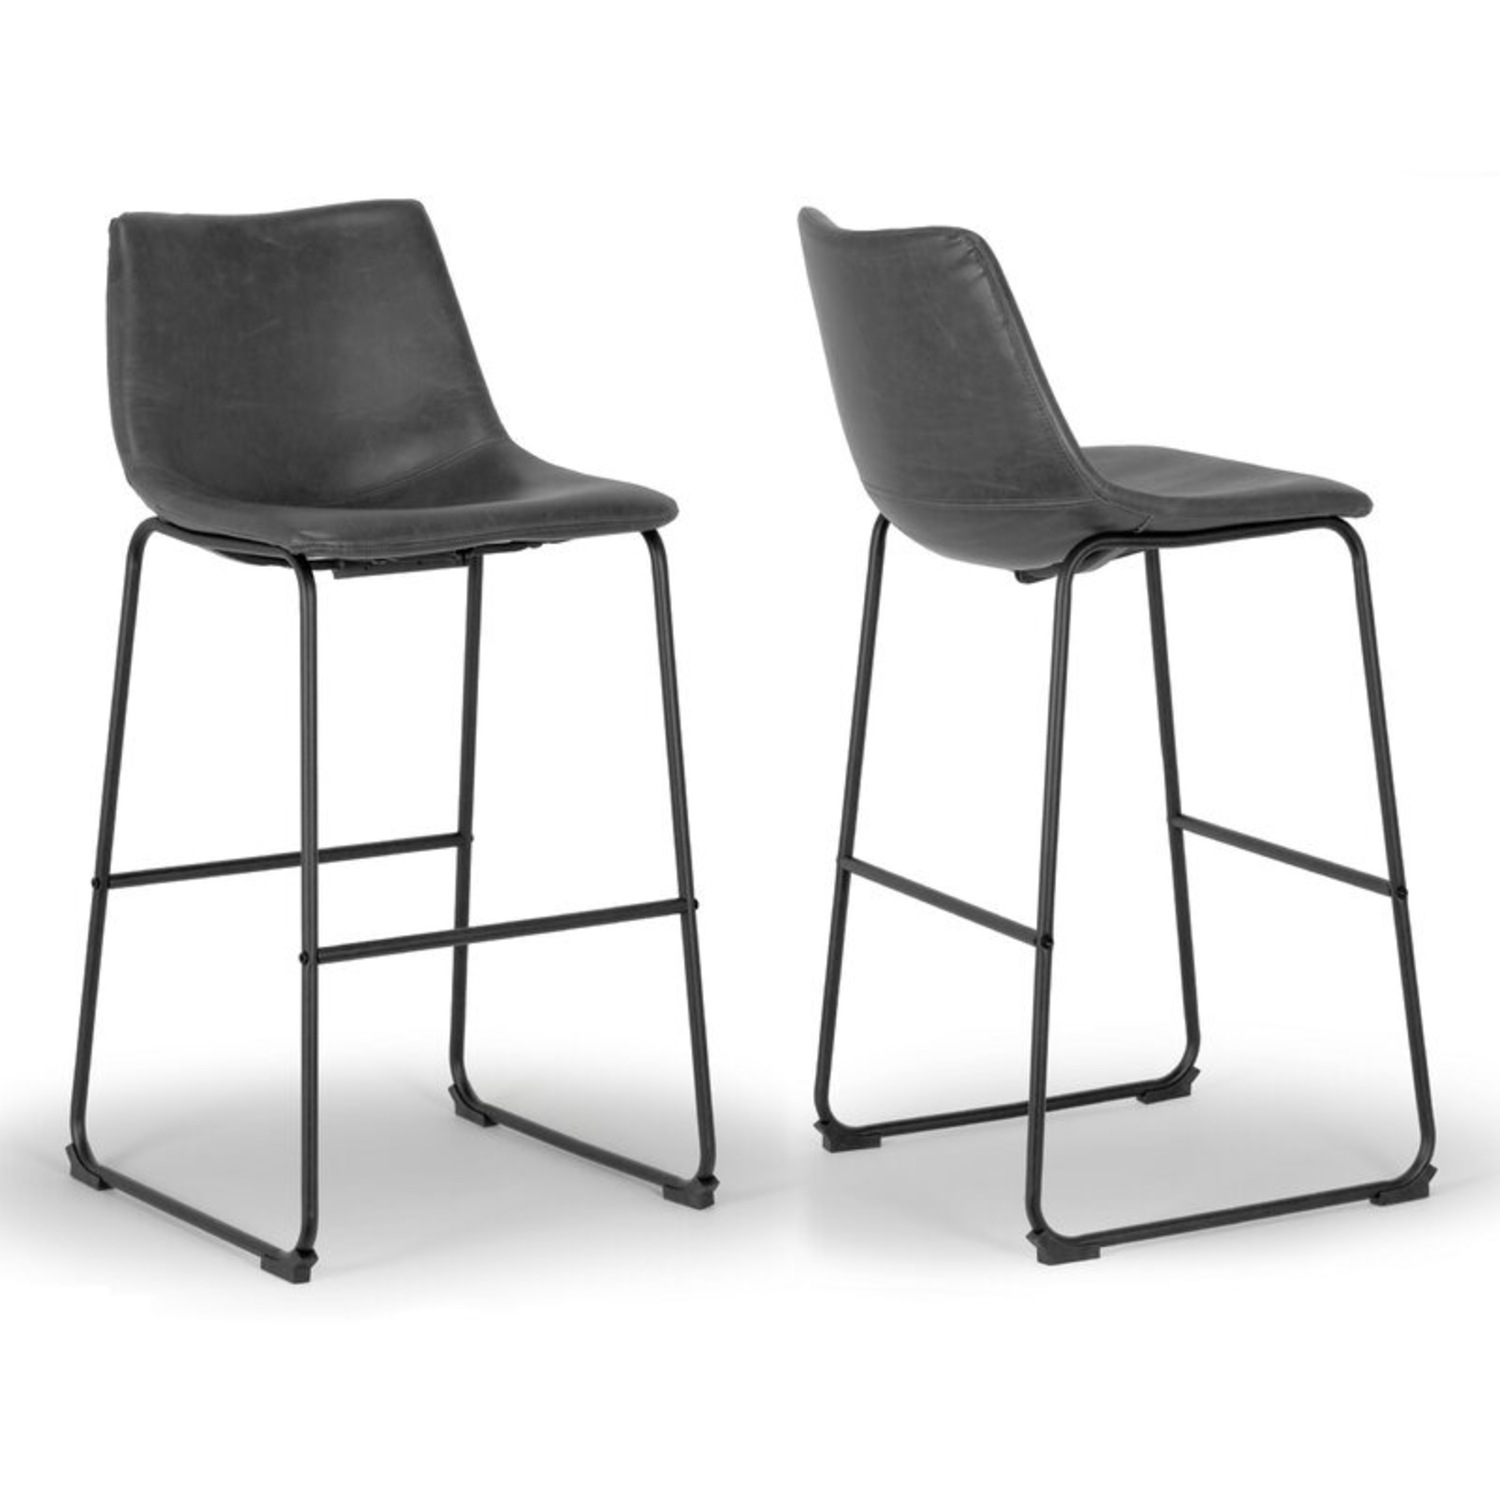 Wayfair Faux Leather Bar Stools - image-1